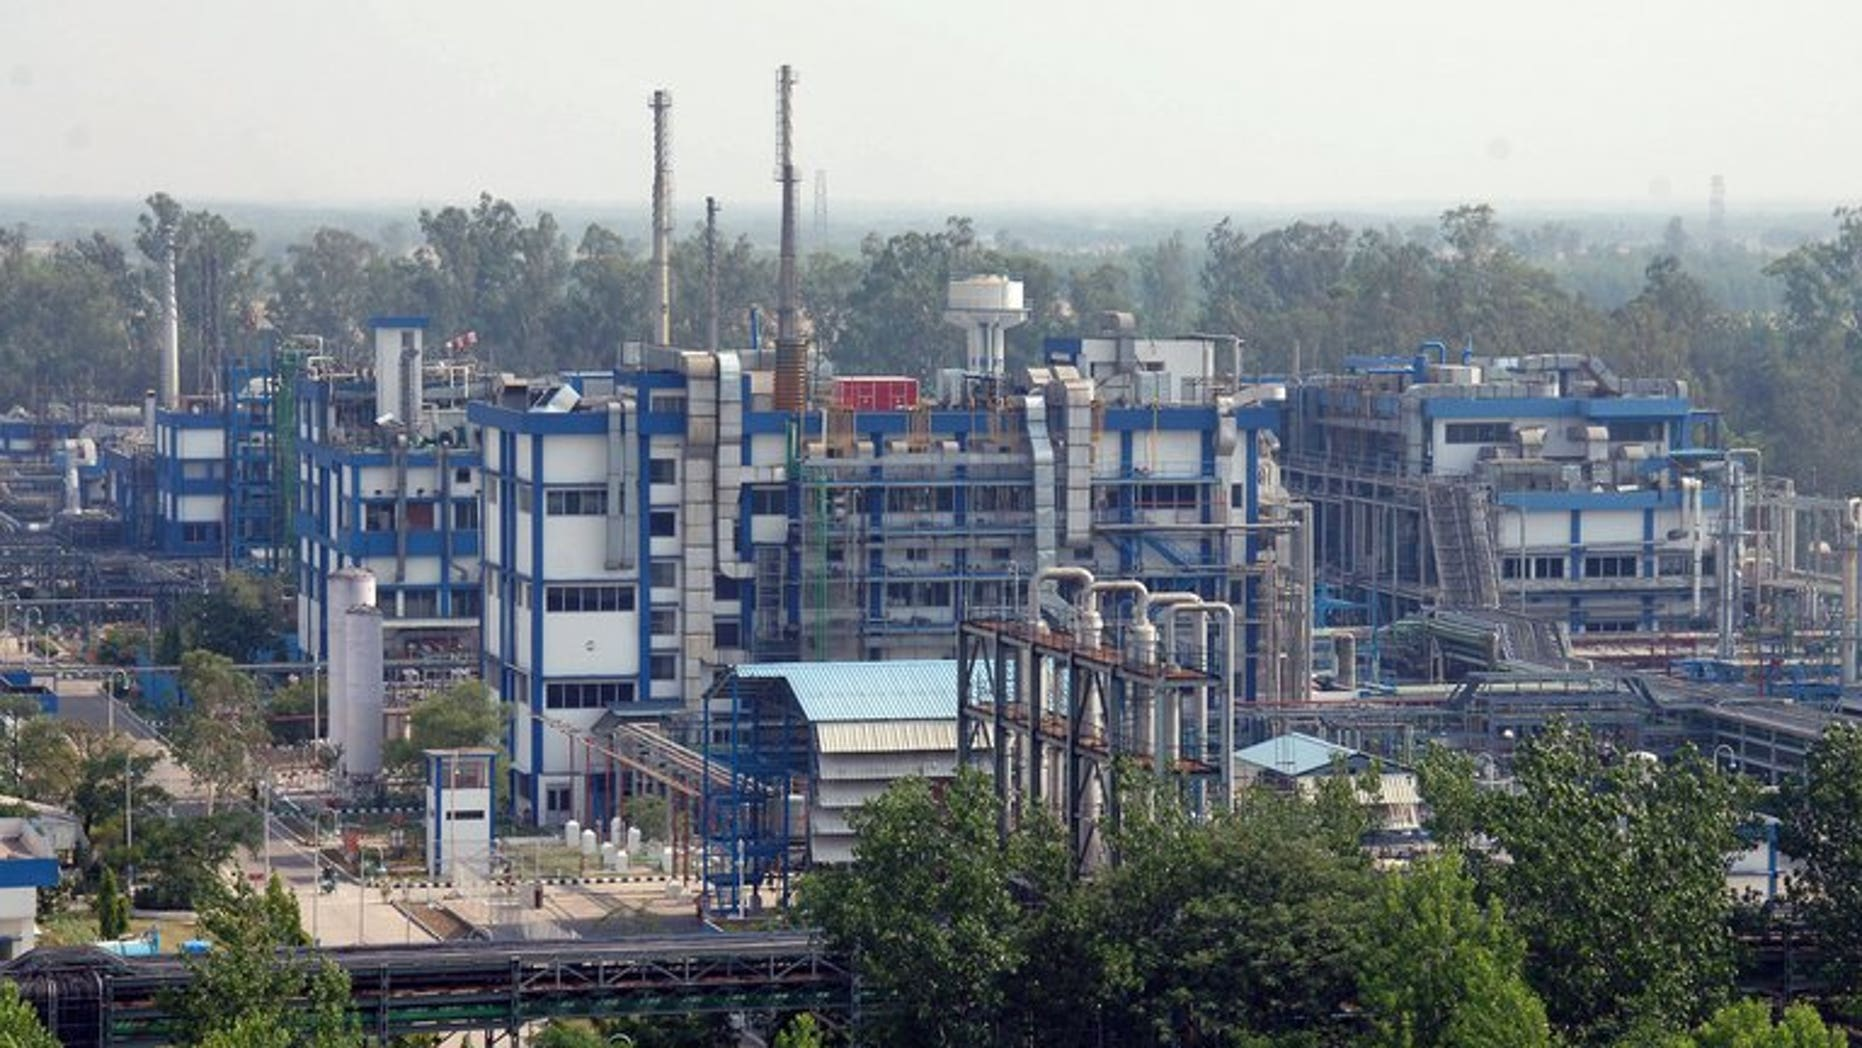 A factory of Indian generic drugs giant Ranbaxy Laboratories is shown at Toansa village on May 14, 2013. Shares in the firm crashed as much as 35% in early trade on Monday.